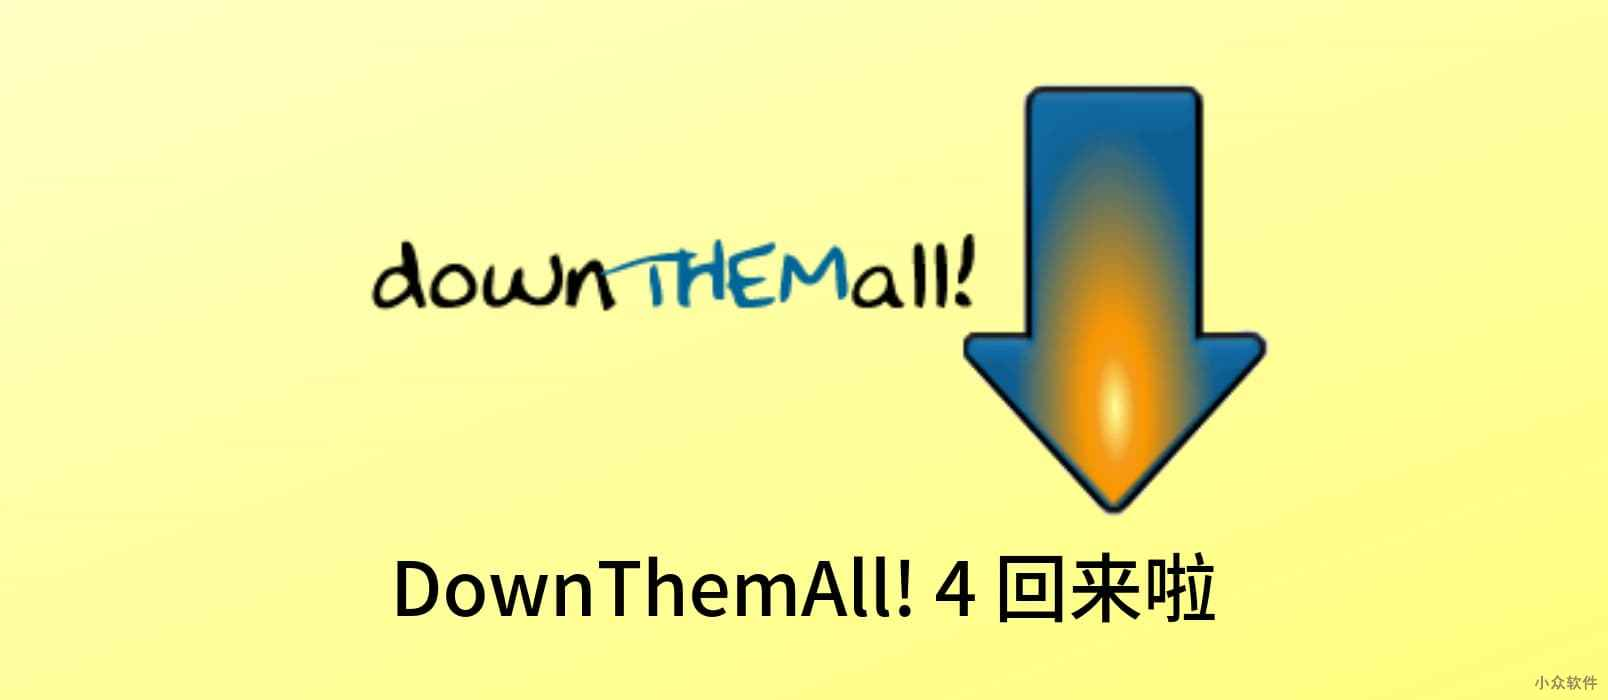 DownThemAll! 4 回来了 1